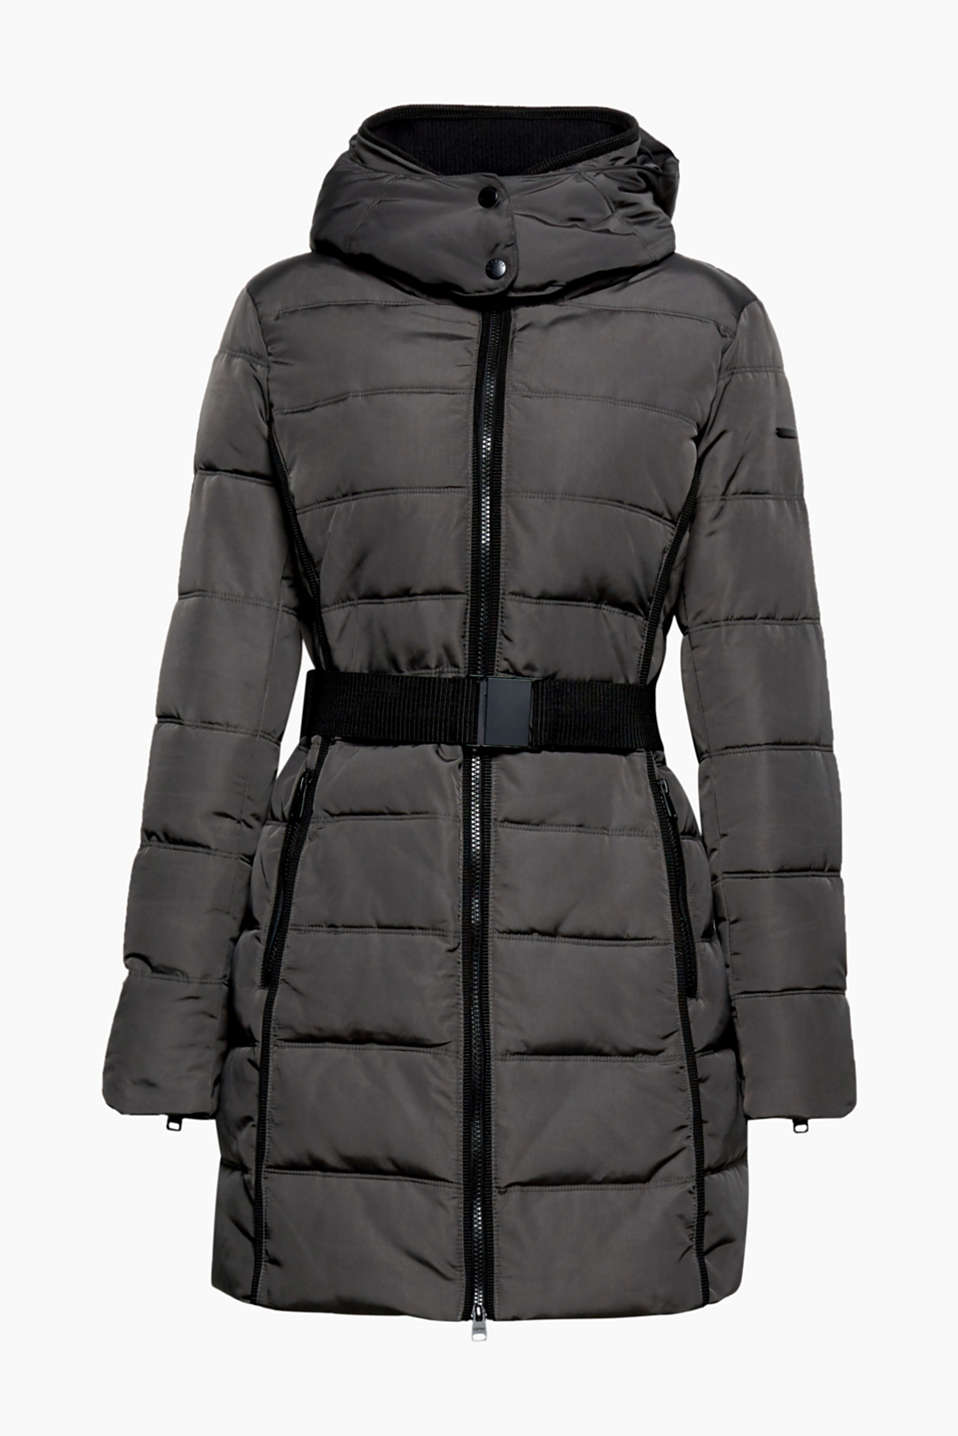 You will be warm and trendy wrapped up in this stylish quilted coat with a hood and waist belt!